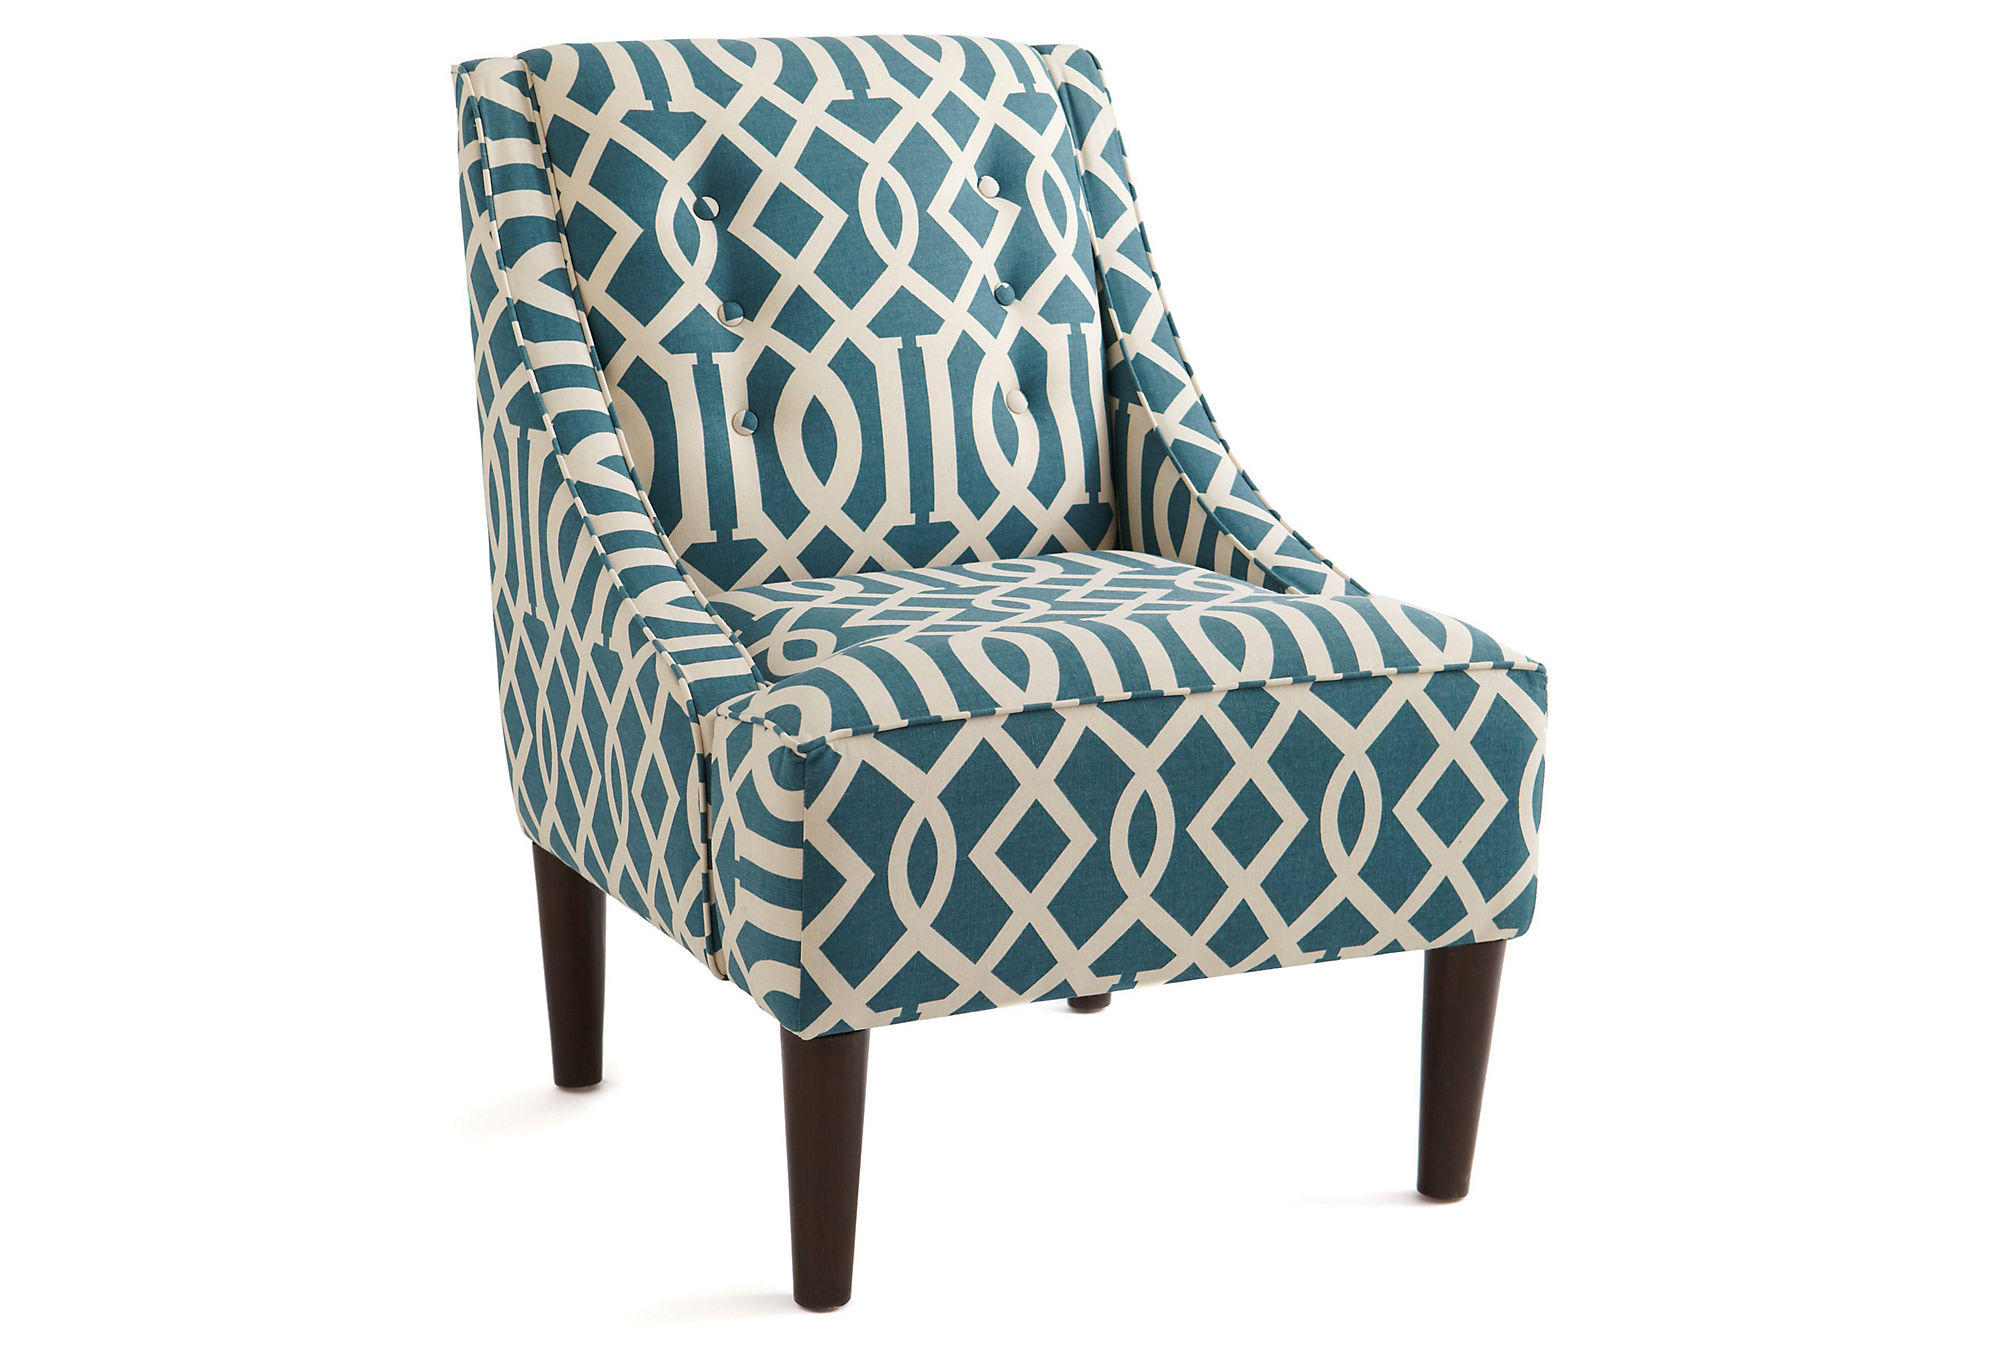 Mccarthy swoop arm chair teal accent from one kings lane